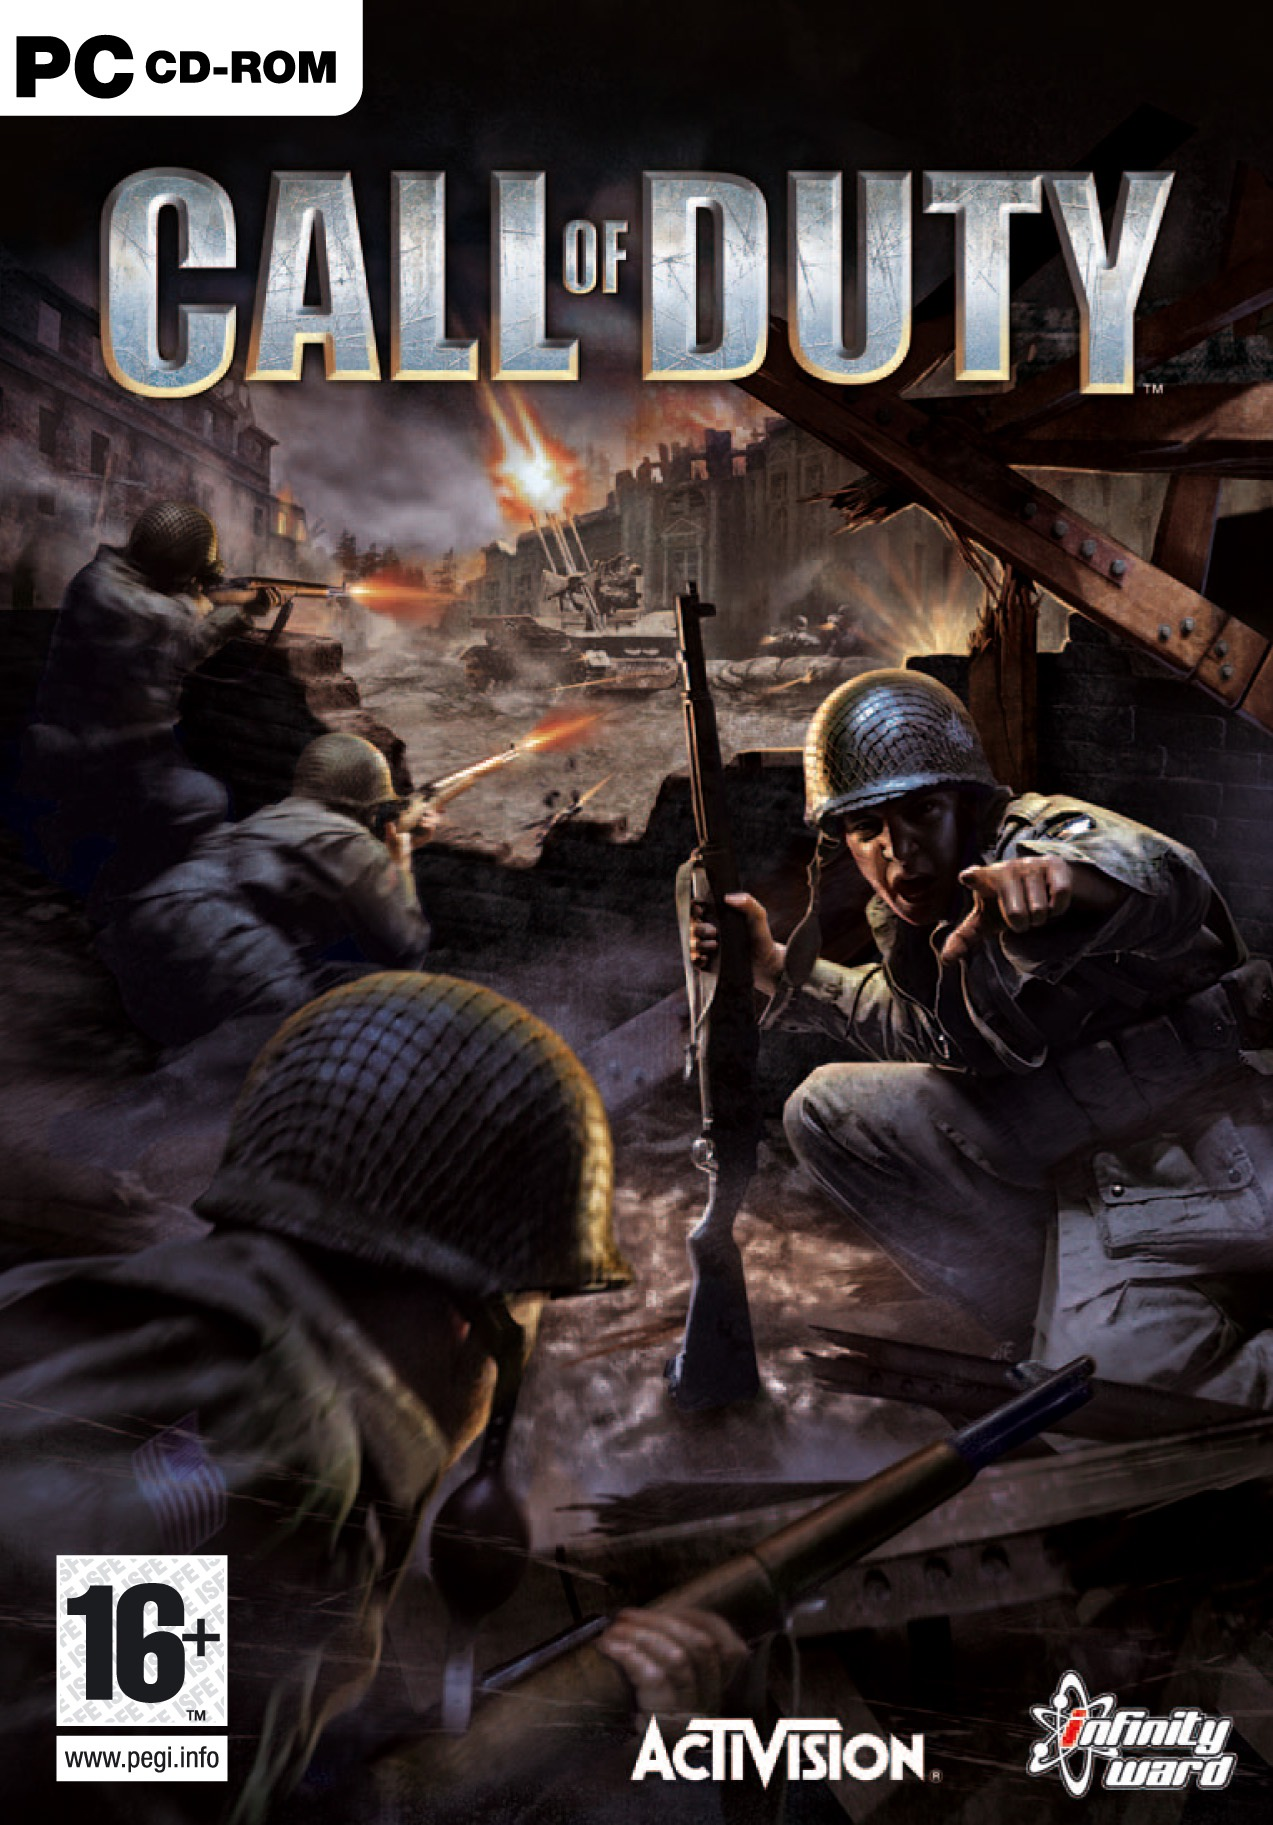 http://images.wikia.com/callofduty/images/3/37/Call_of_Duty_Cover.jpg